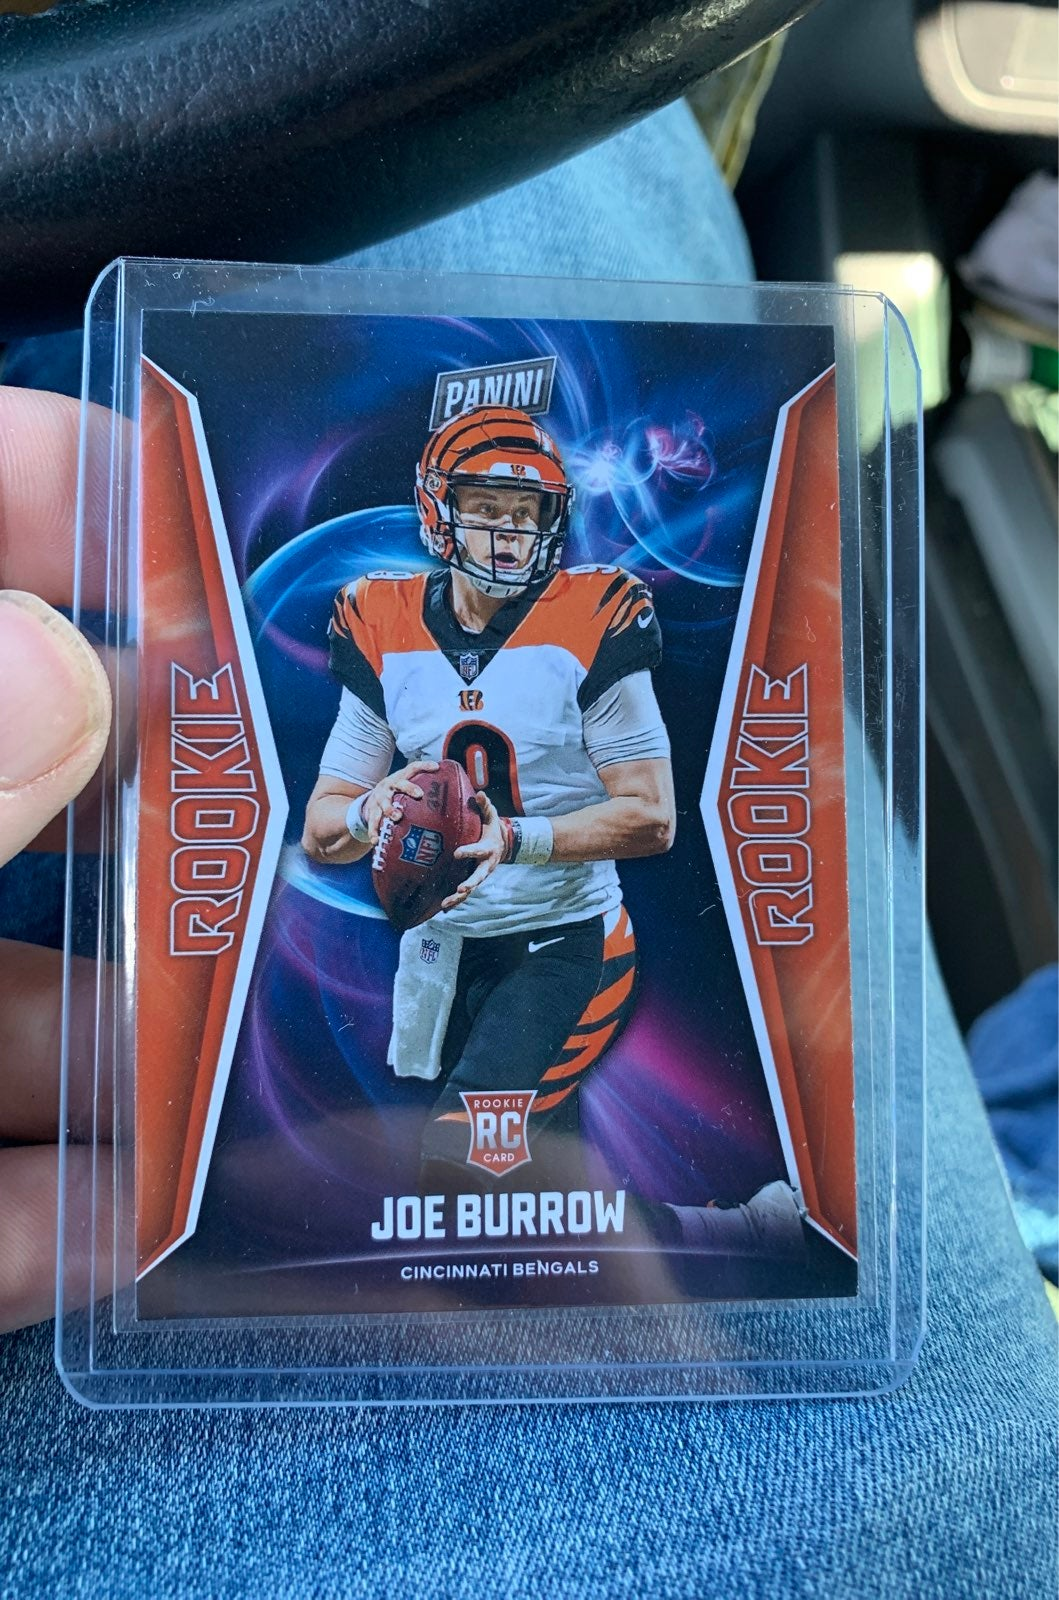 Joe Burrow Panini Rookie